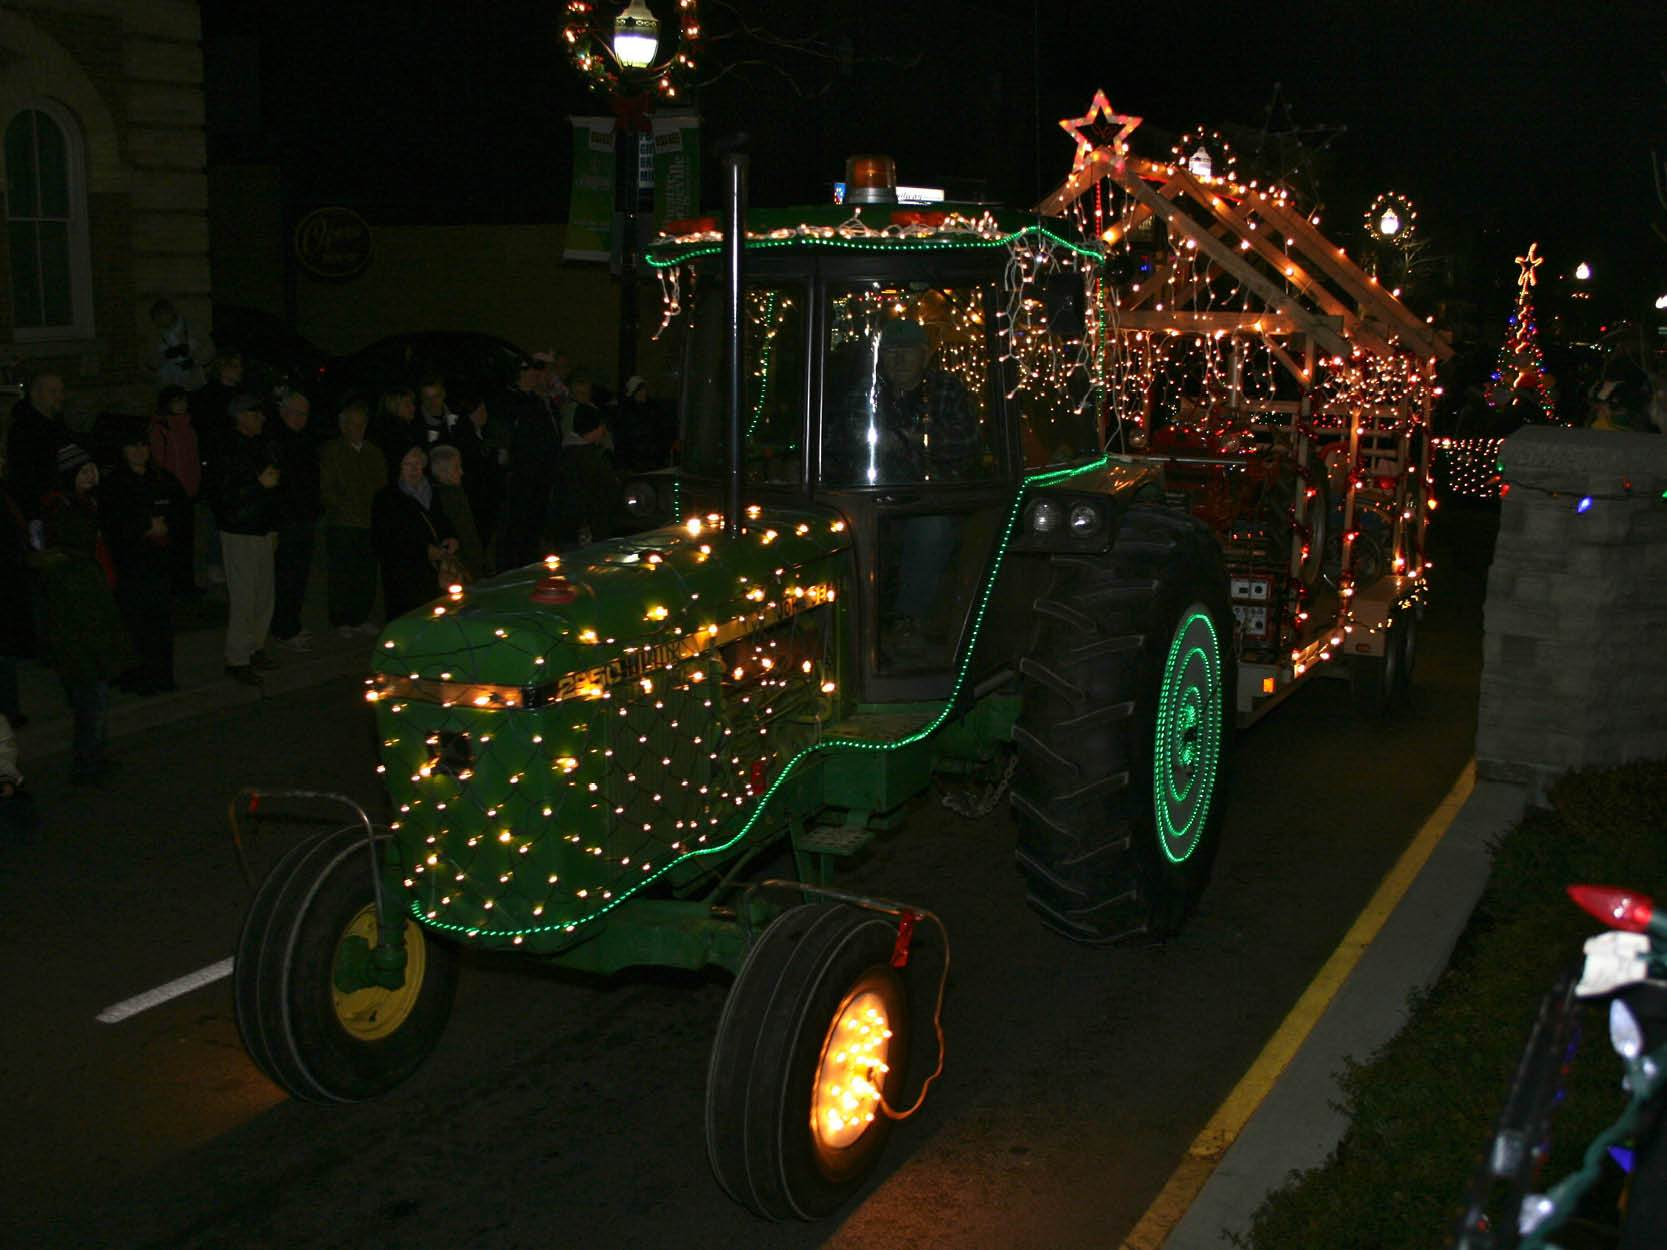 Tractor decorated in lights at night